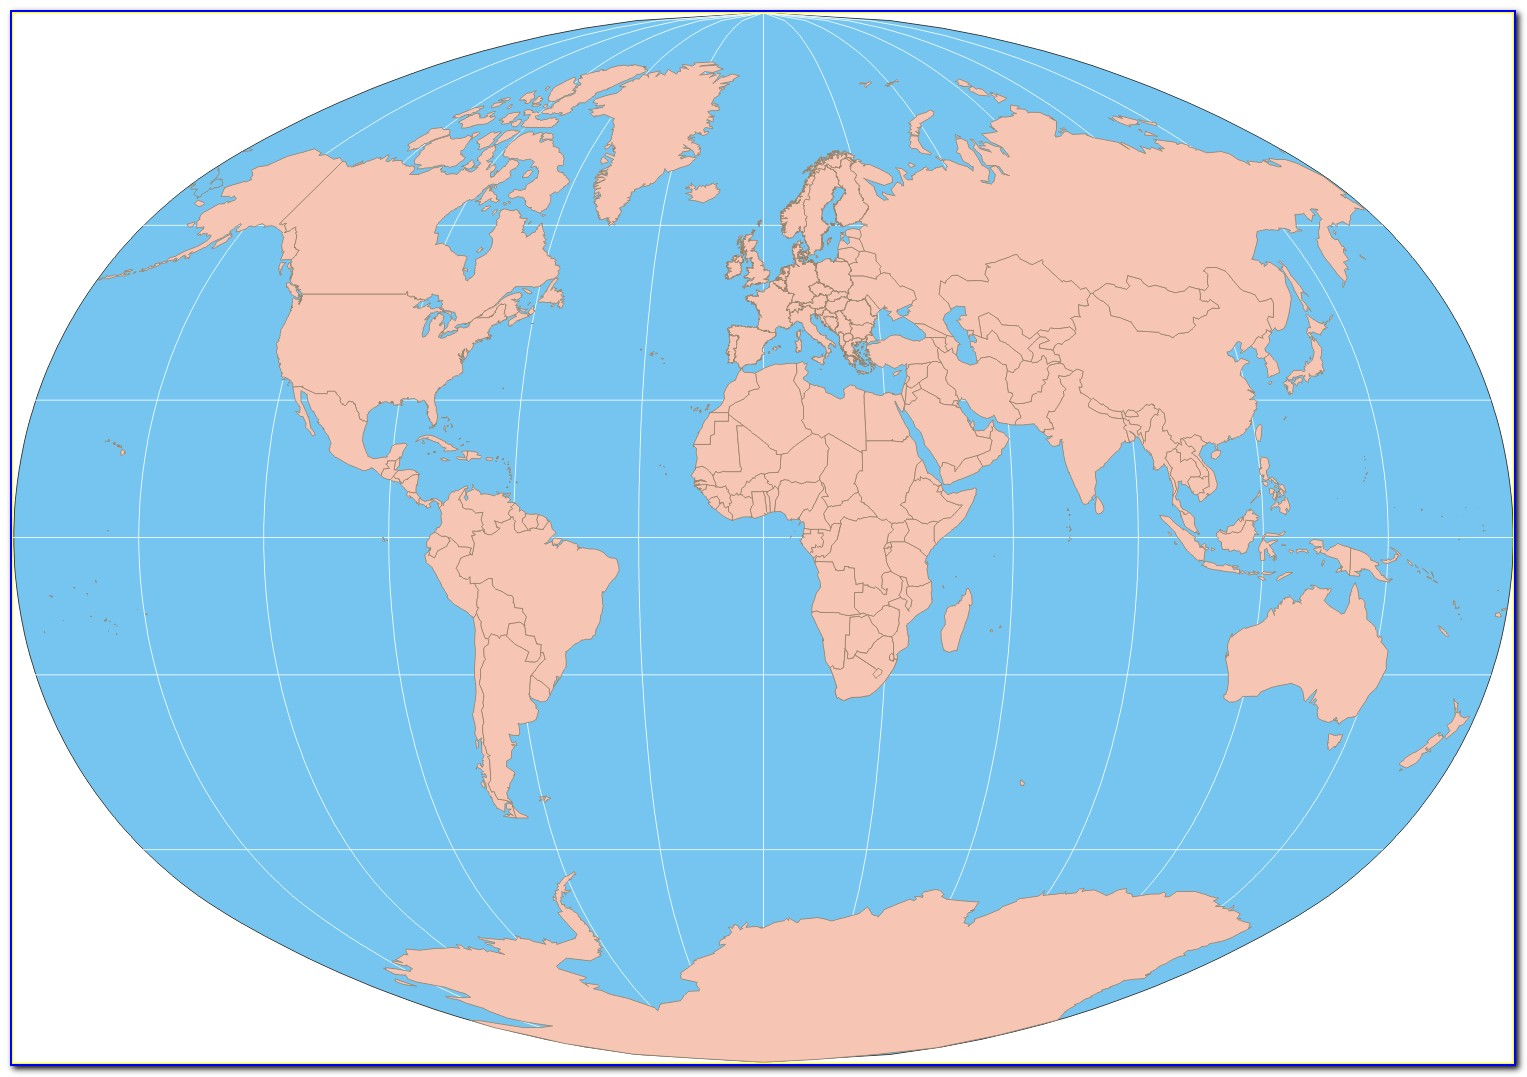 Printable Labeled World Map For Students